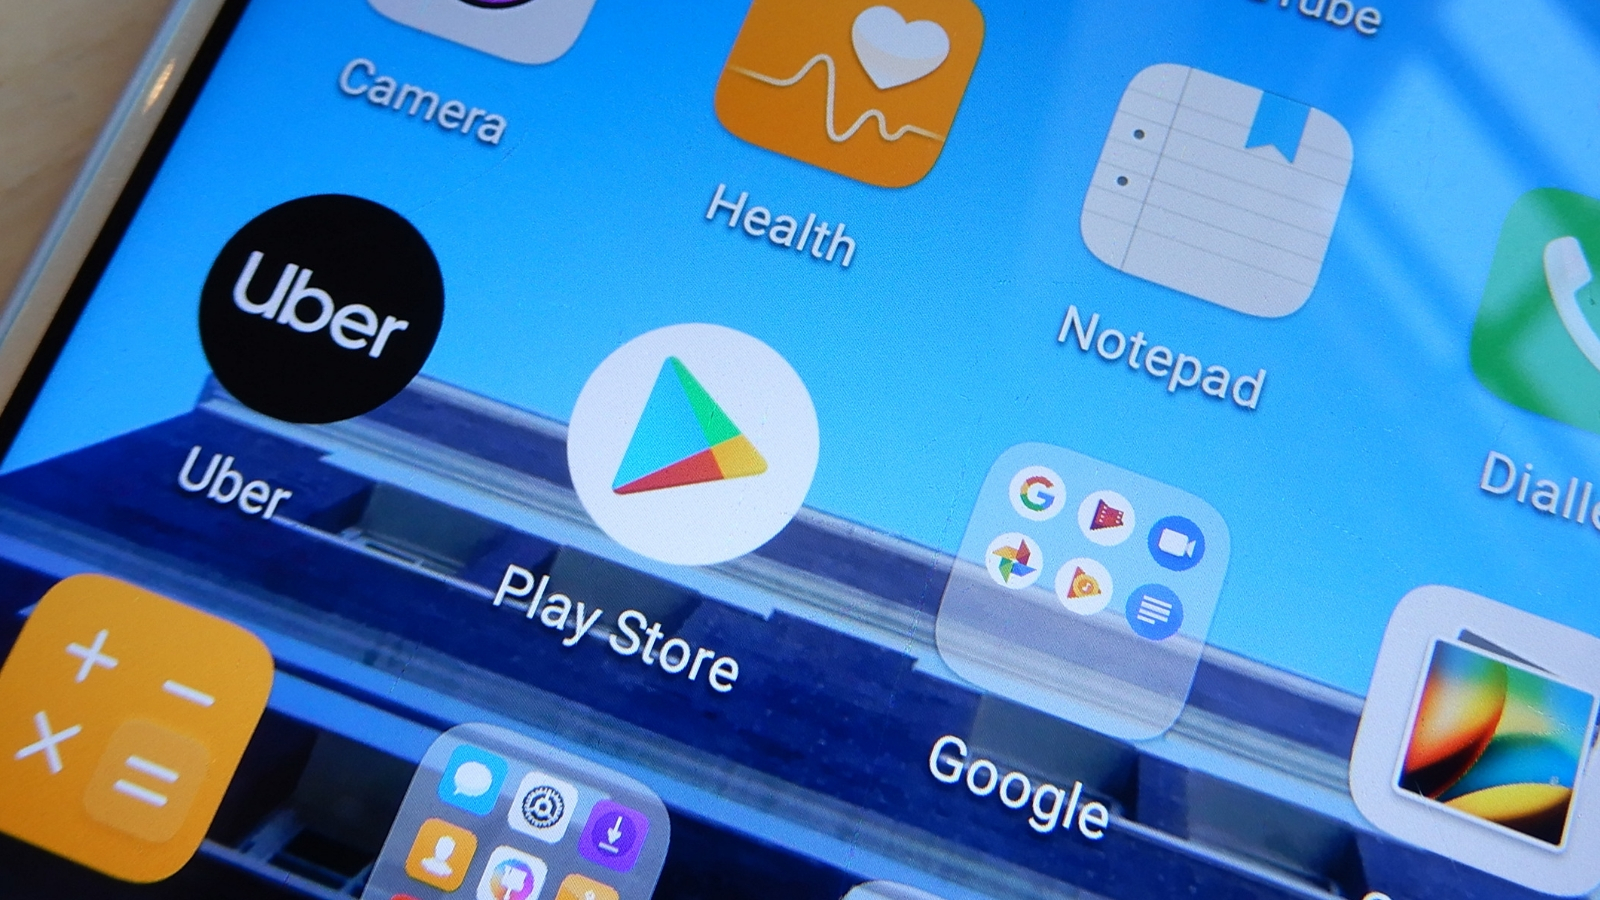 Google doesn't want you sideloading its apps on Huawei phones - Memeburn